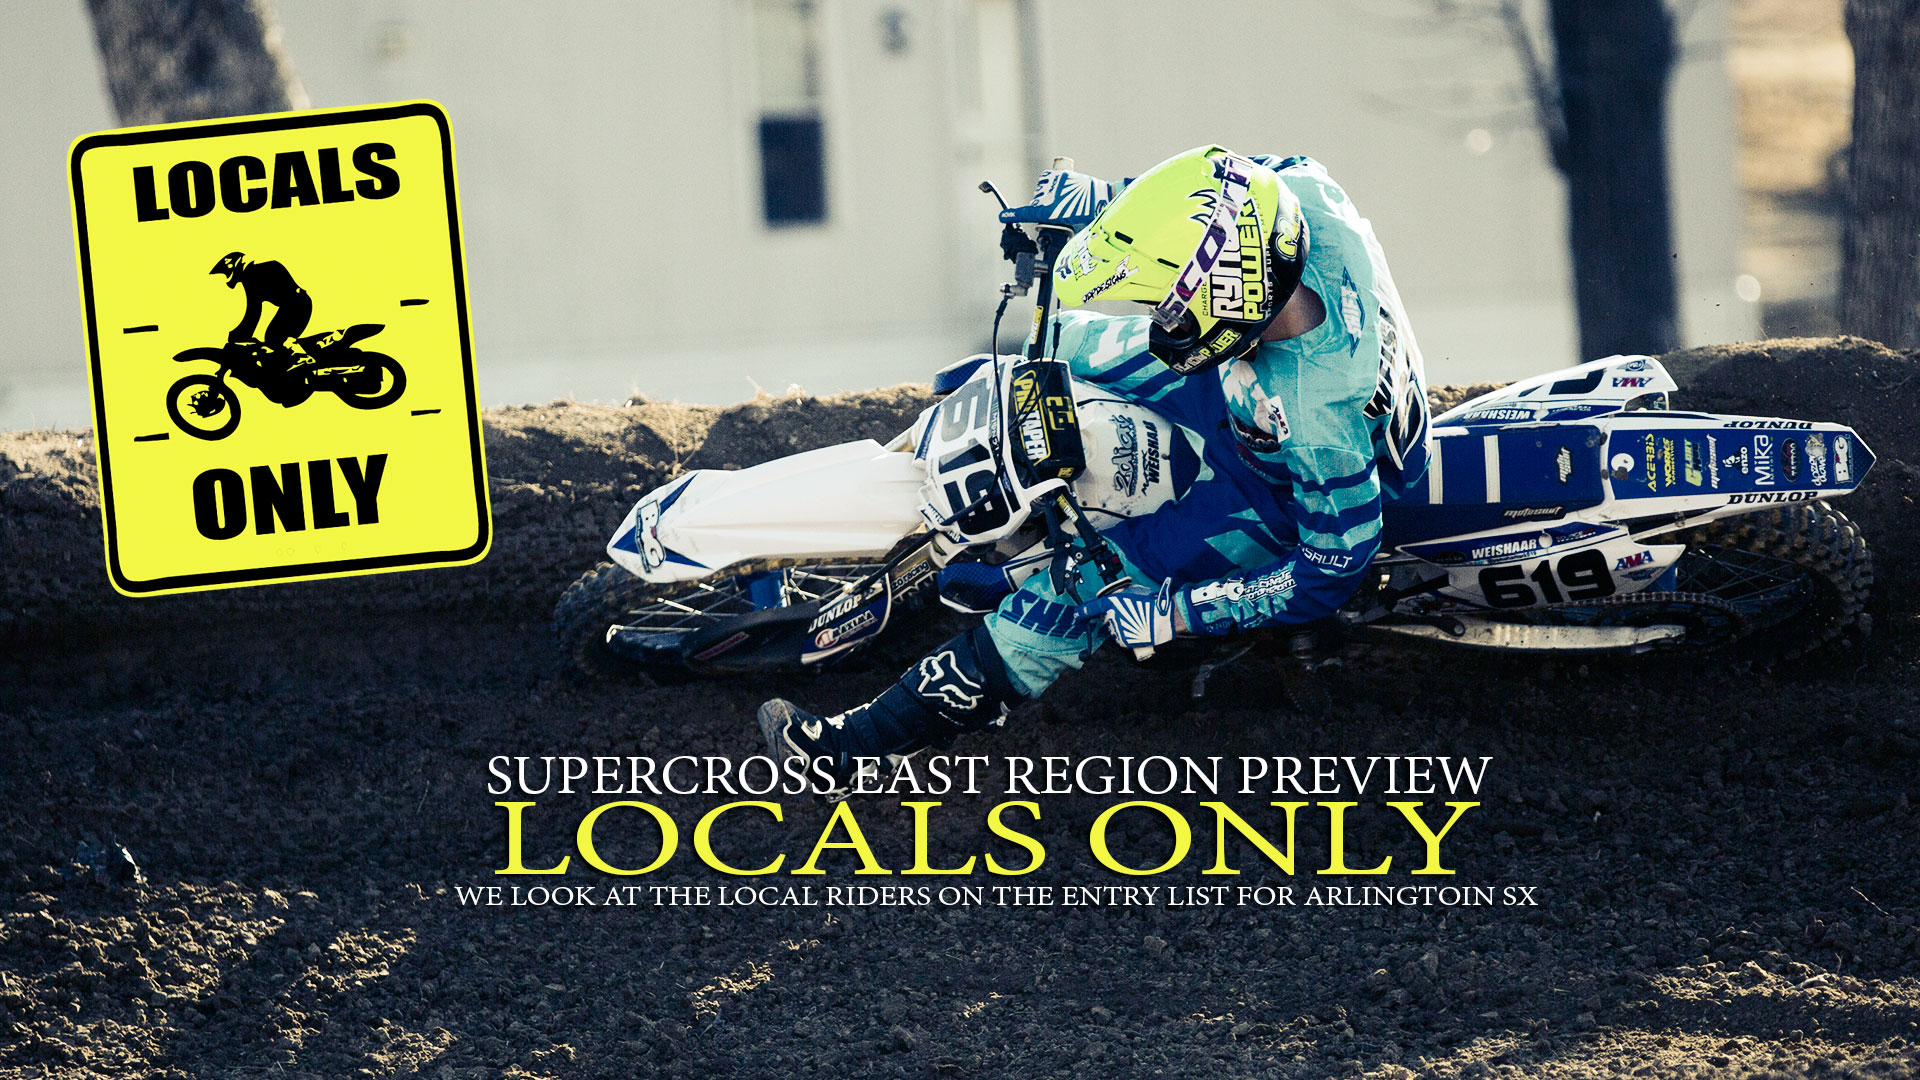 Locals Only: Monster Energy Supercross East Local Rider Preview